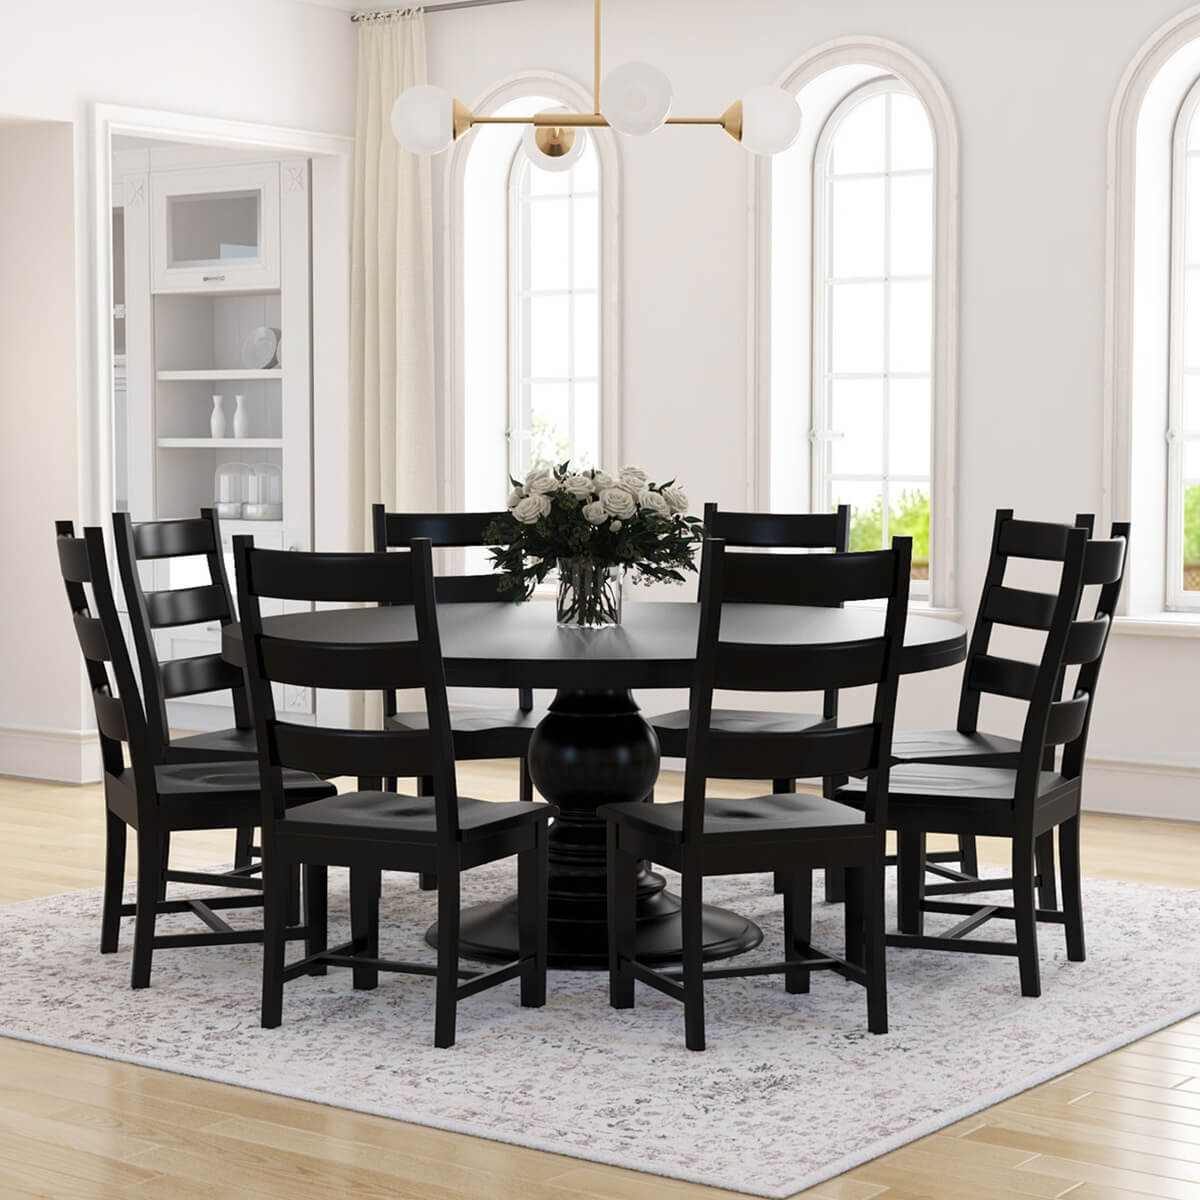 Dining Set Round Table: Nottingham Rustic Solid Wood Black Round Dining Room Table Set